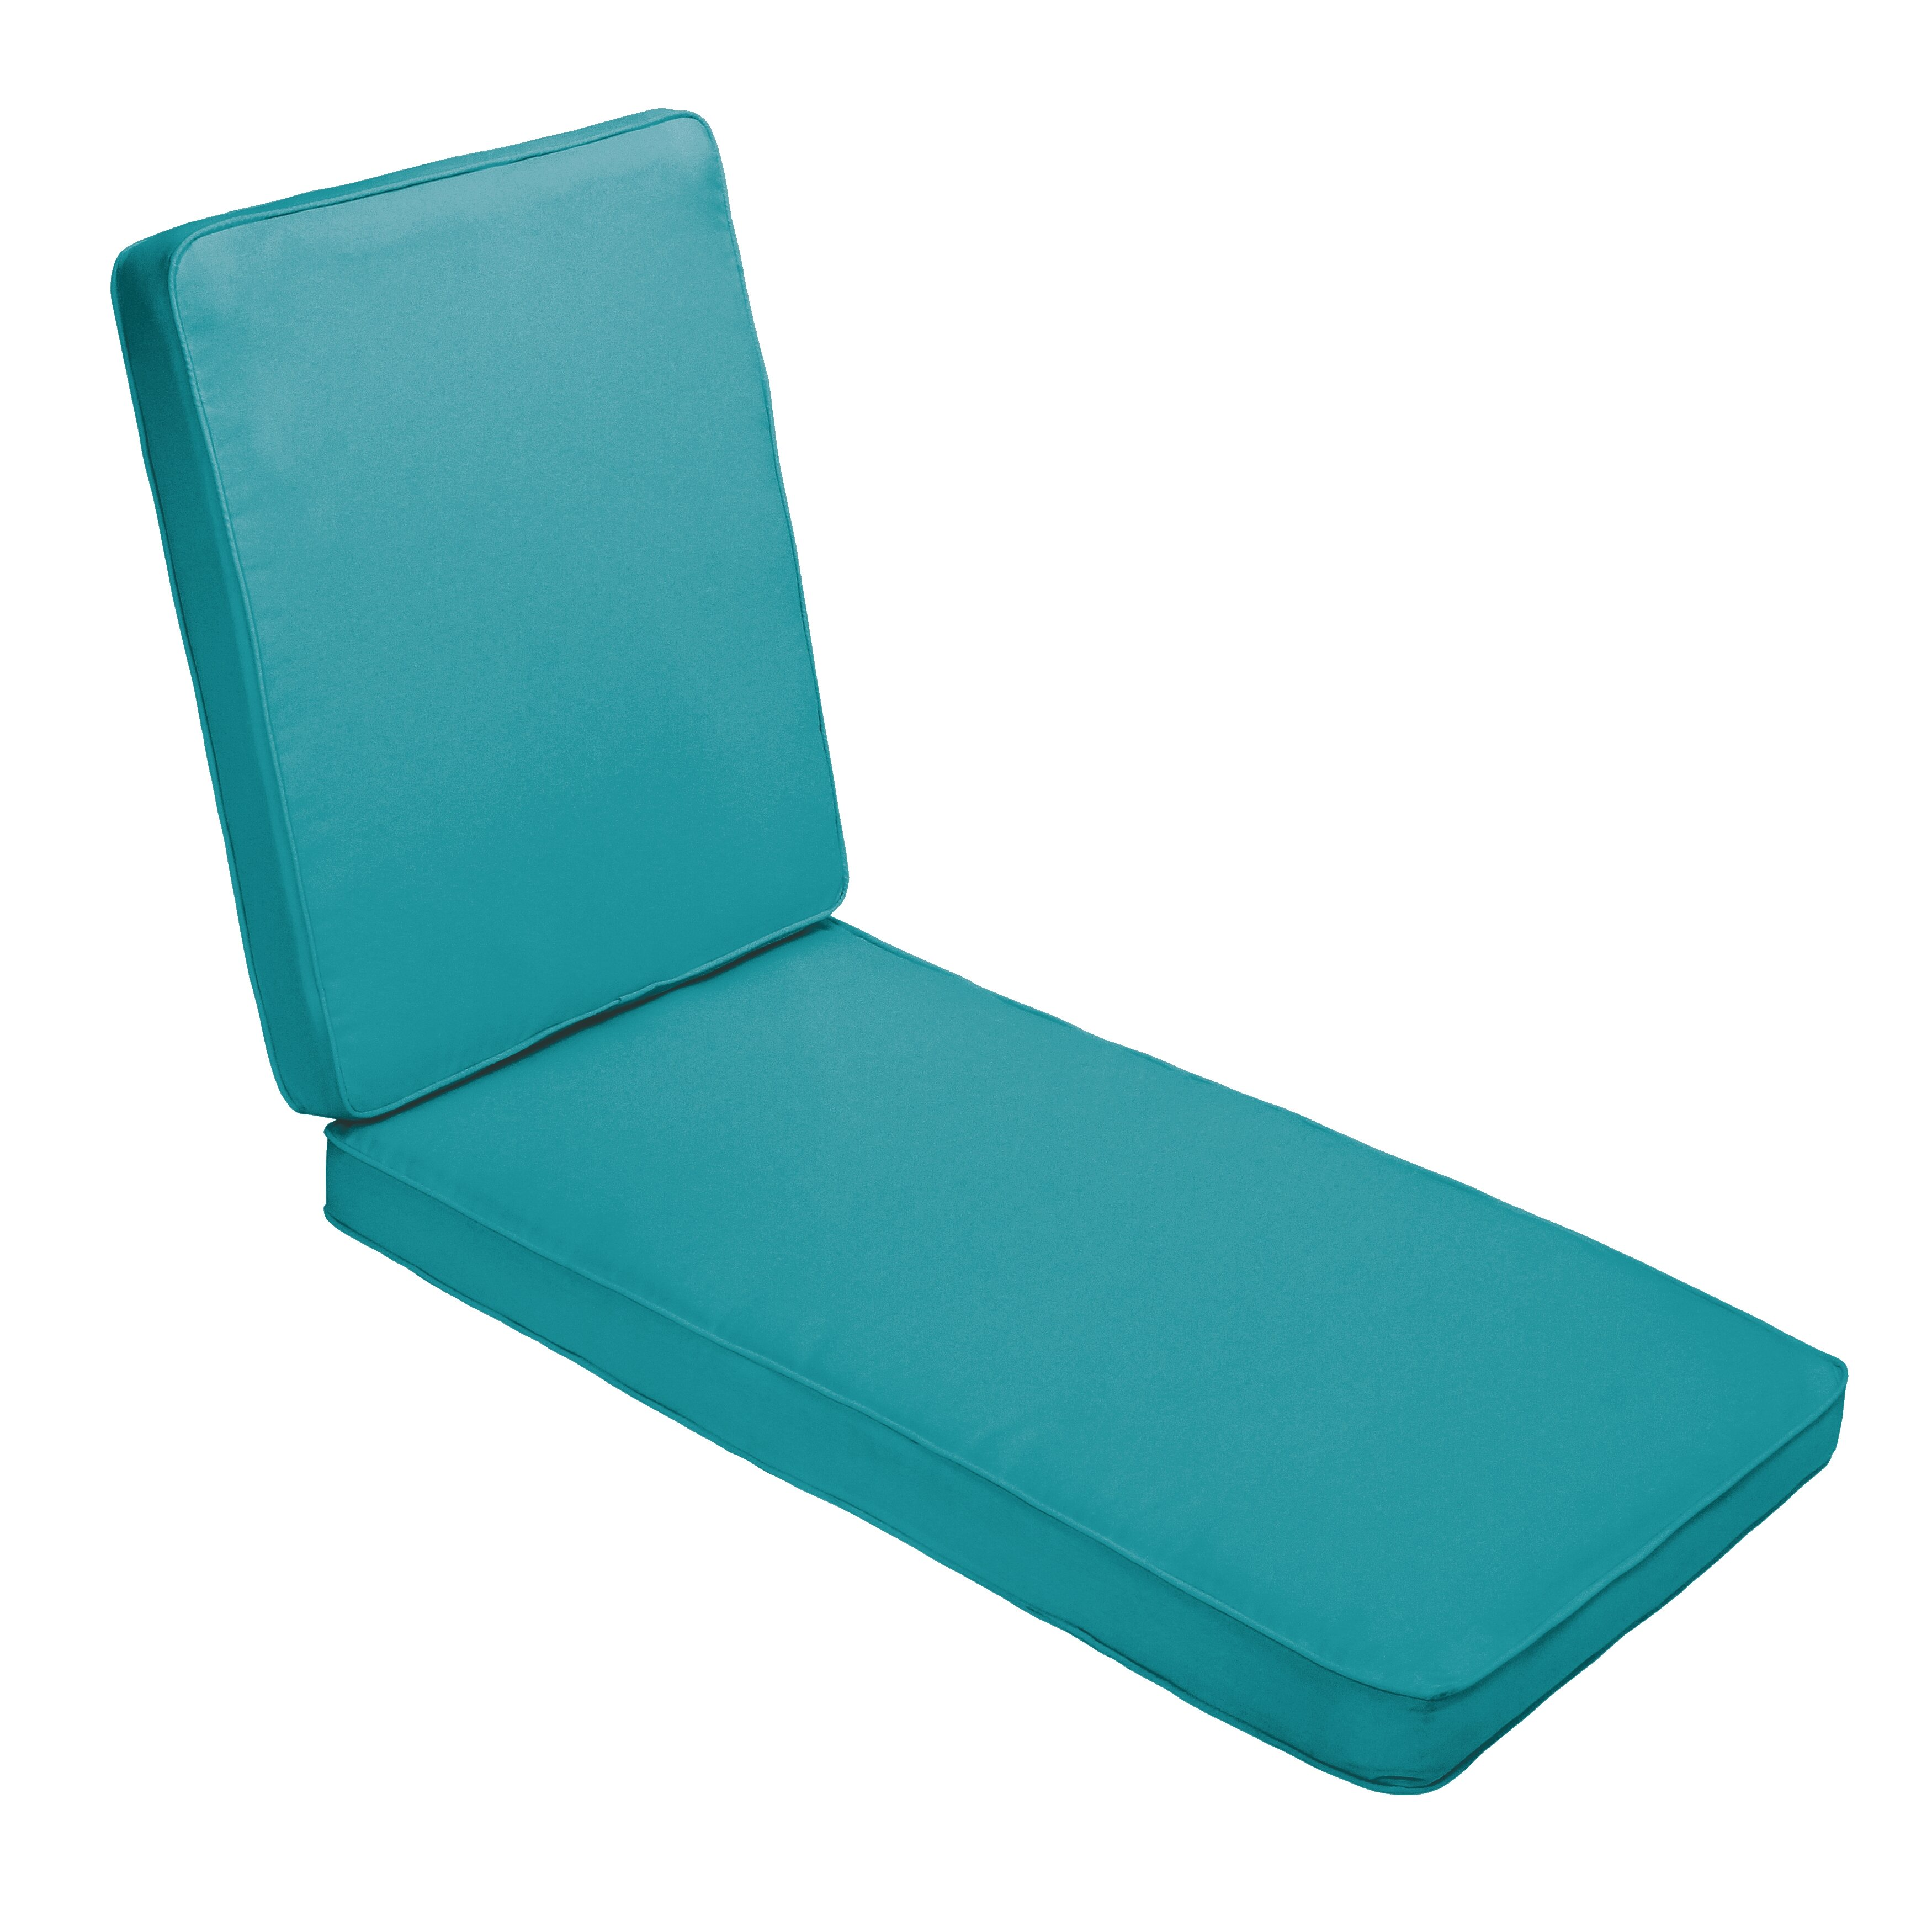 Amazing Hinged Indoor Outdoor Lounge Chair Cushion Machost Co Dining Chair Design Ideas Machostcouk